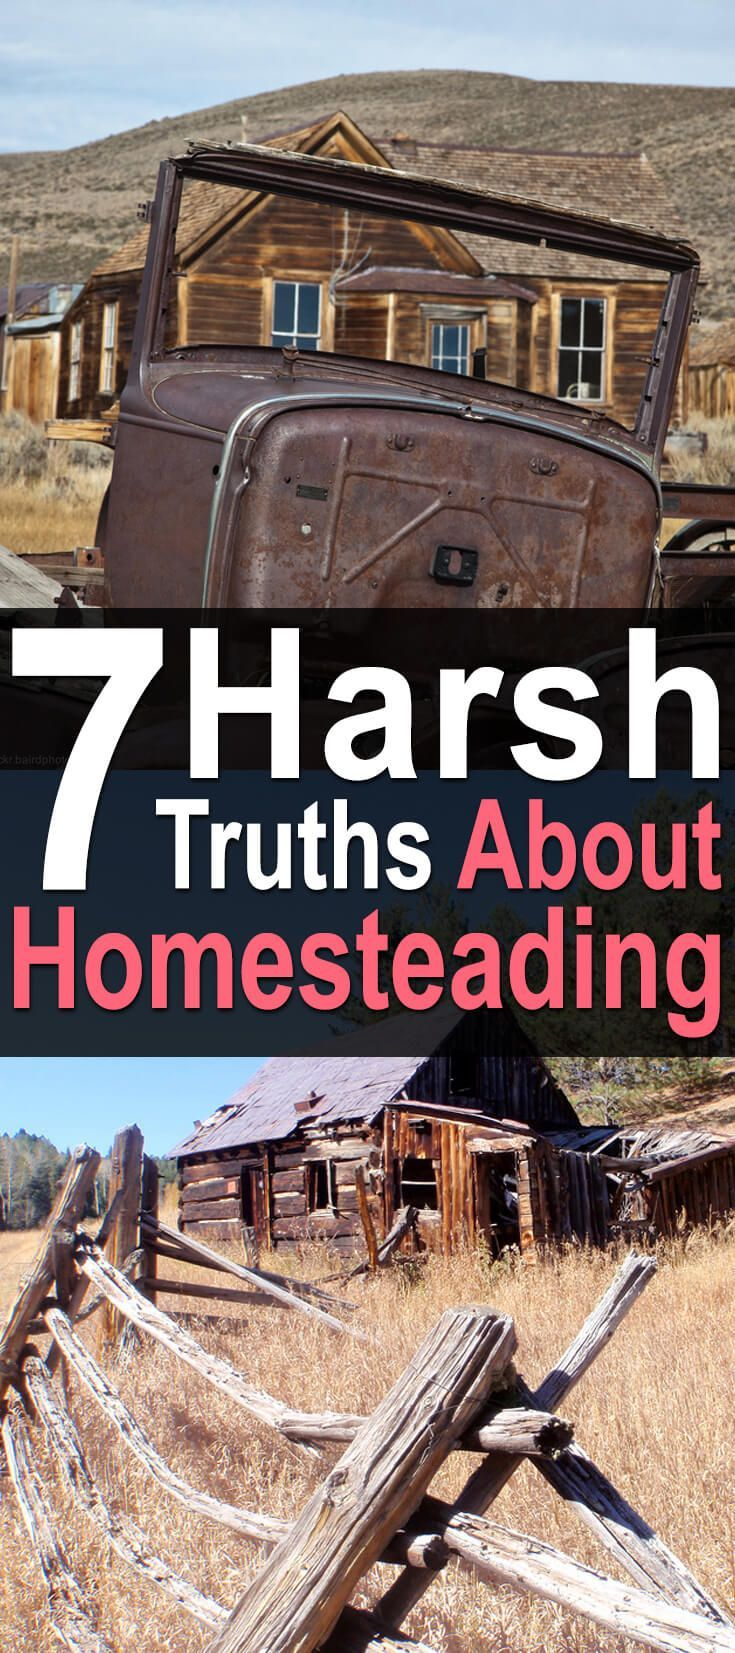 7 Harsh Truths About Homesteading. If you are thinking of homesteading, you may be seeking a way out of the typical consumer-driven lifestyle of the 21st century. However, in order to be successful as a homesteader, you need to take off your rose-colored glasses and realize that homesteading requires hard work and dedication #Homesteadsurvivalsite #Homesteading #Homesteader